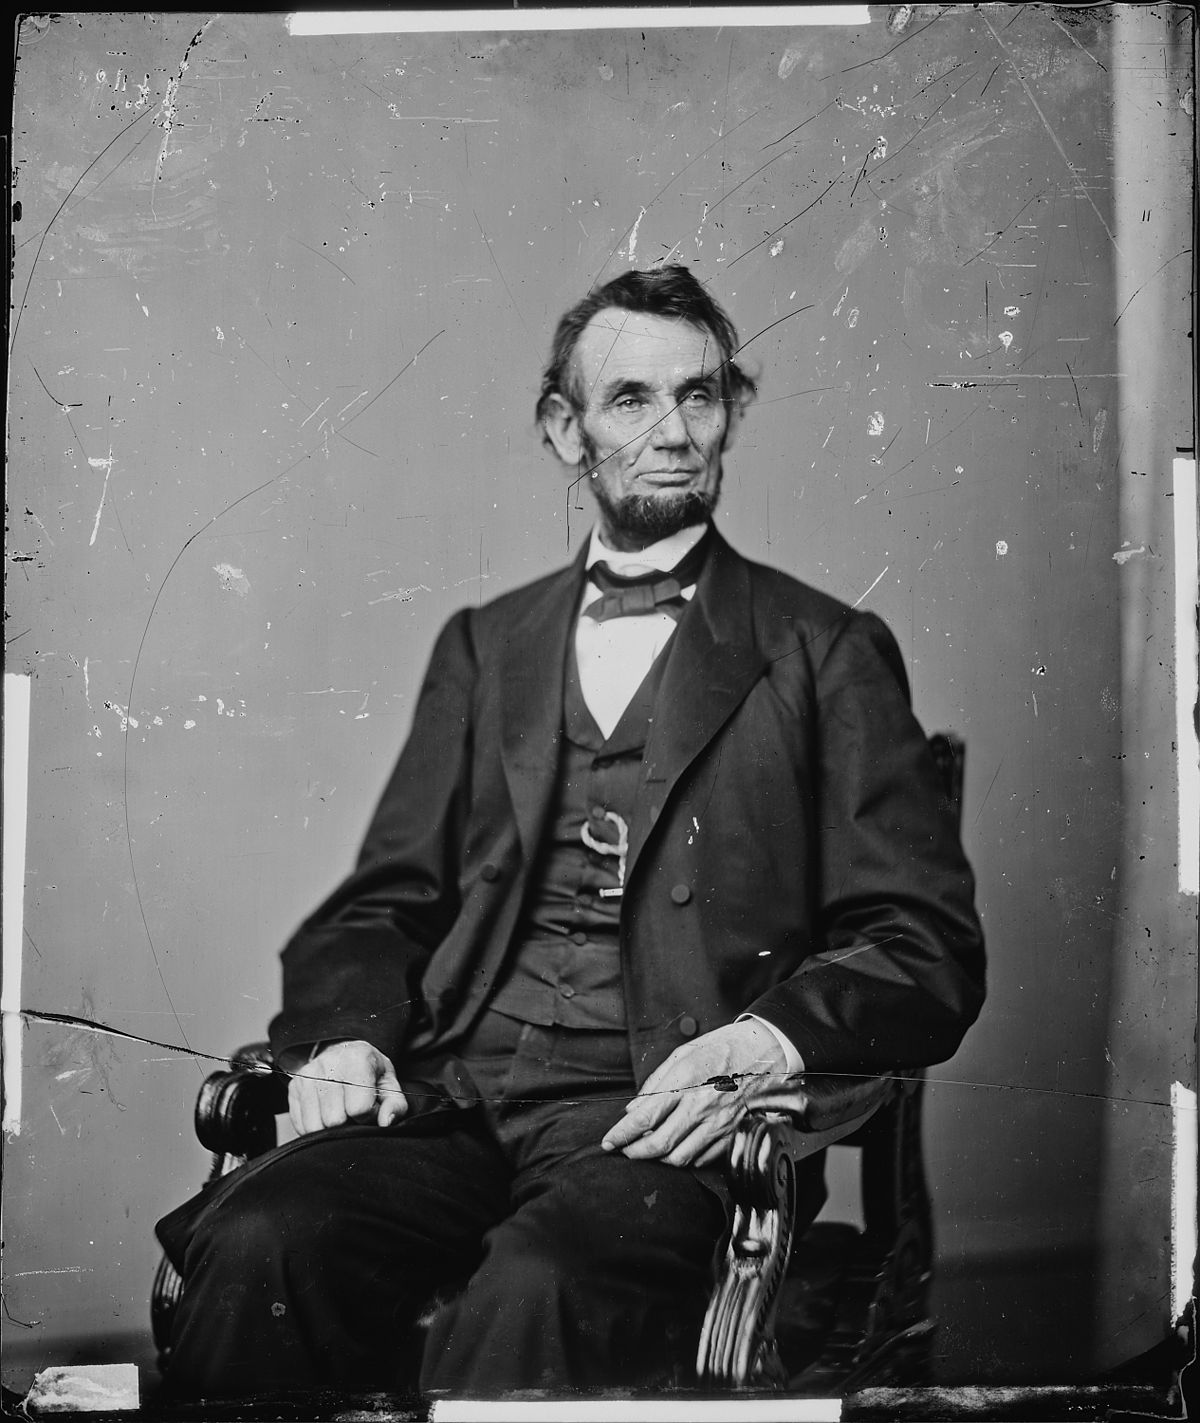 millercenter org president lincoln essays biography Included are short cases on thomas edison and abraham lincoln, exemplars of   .